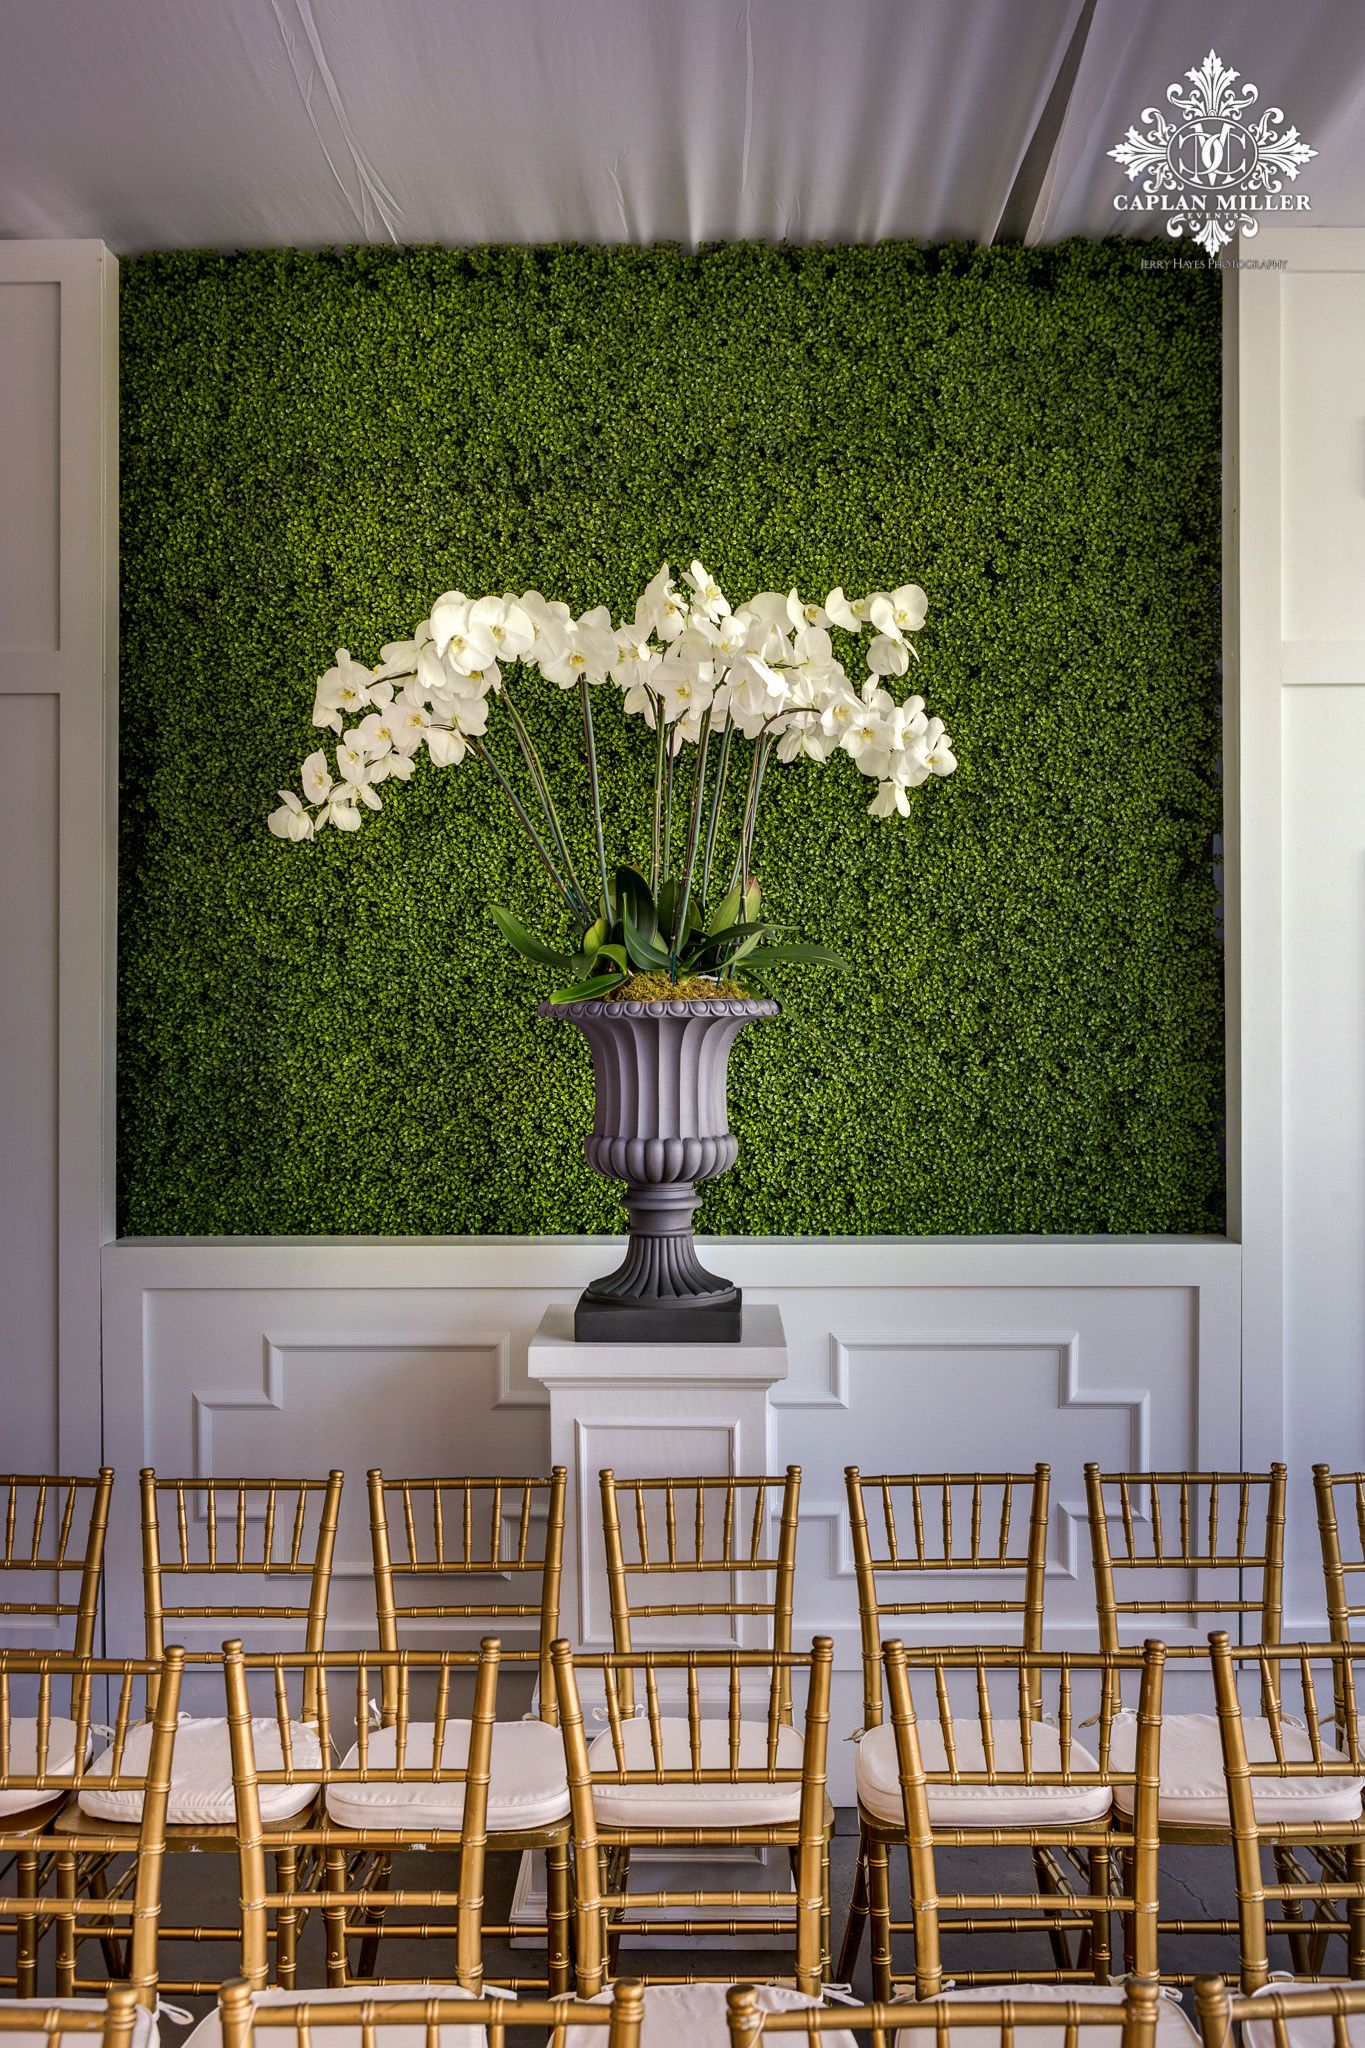 boxwood walls at wedding ceremony caplan miller events on interior using artificial boxwood panels with flowers id=23765